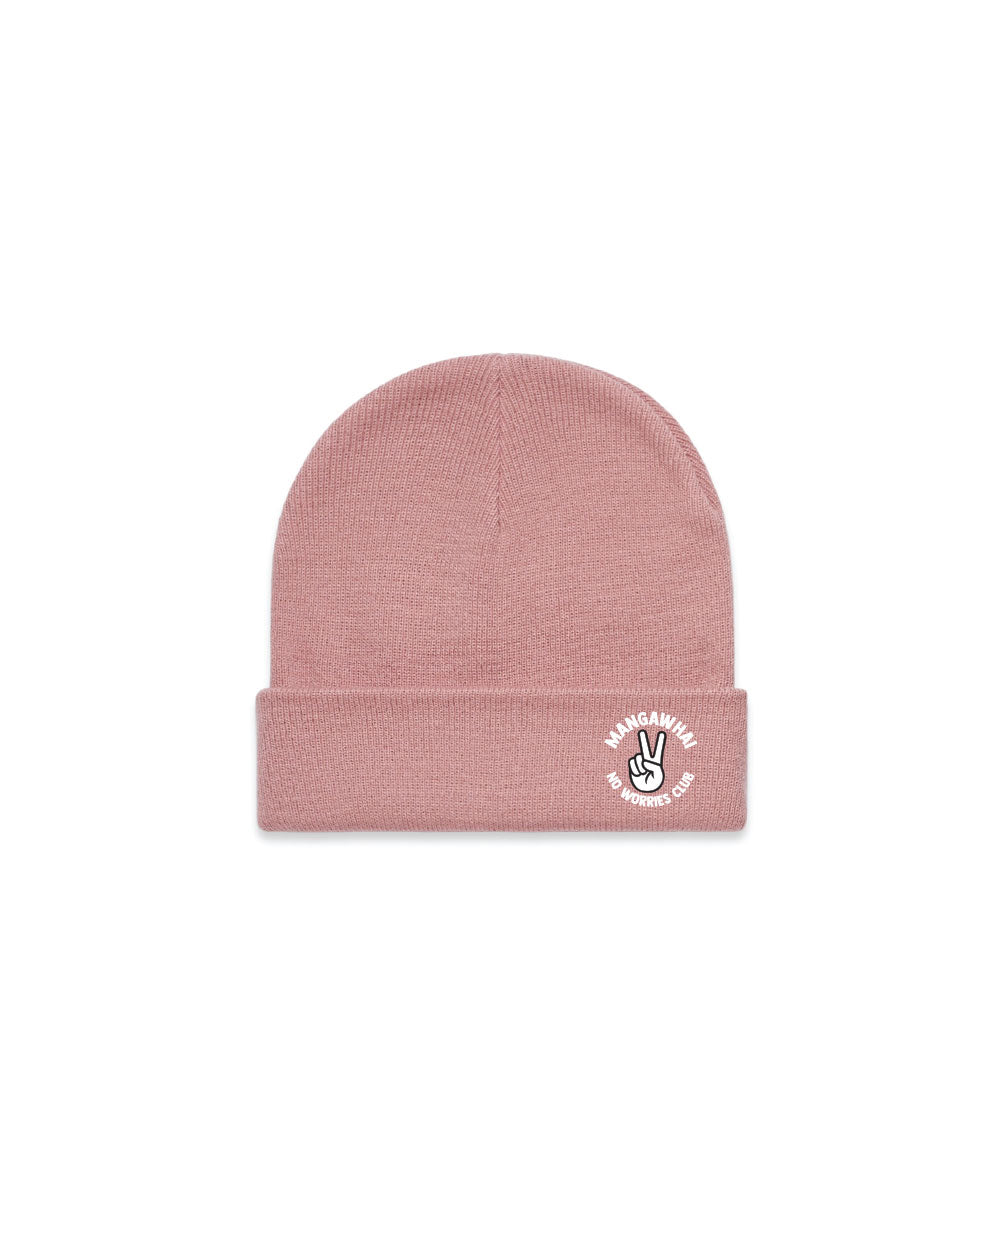 No Worries Pink Beanies - Threadbox